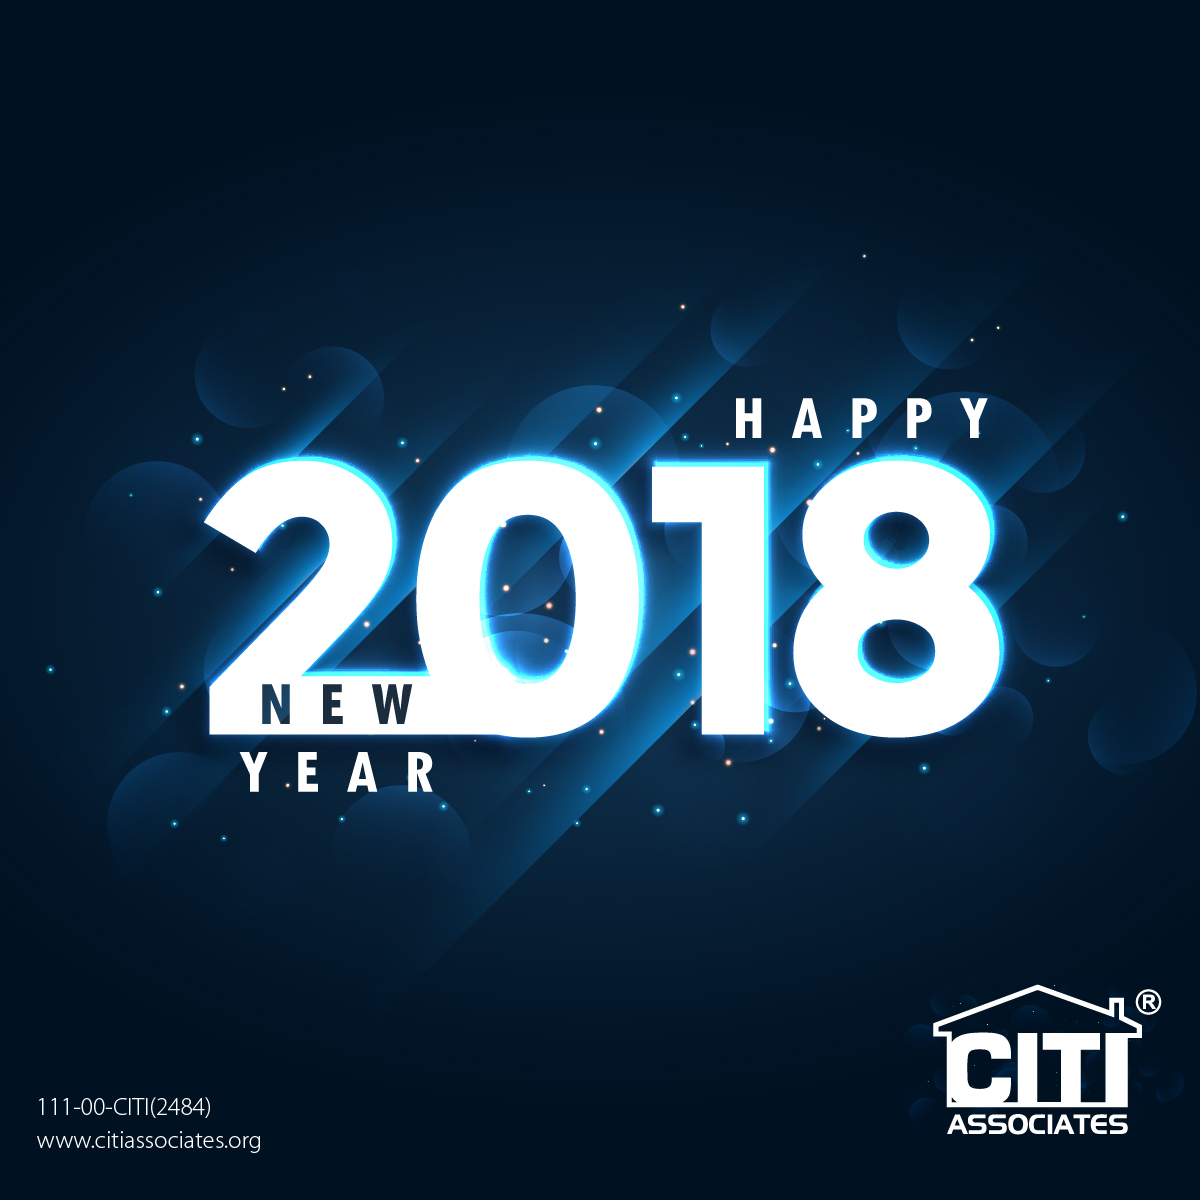 Happy New Year 2018 From CITI Associates